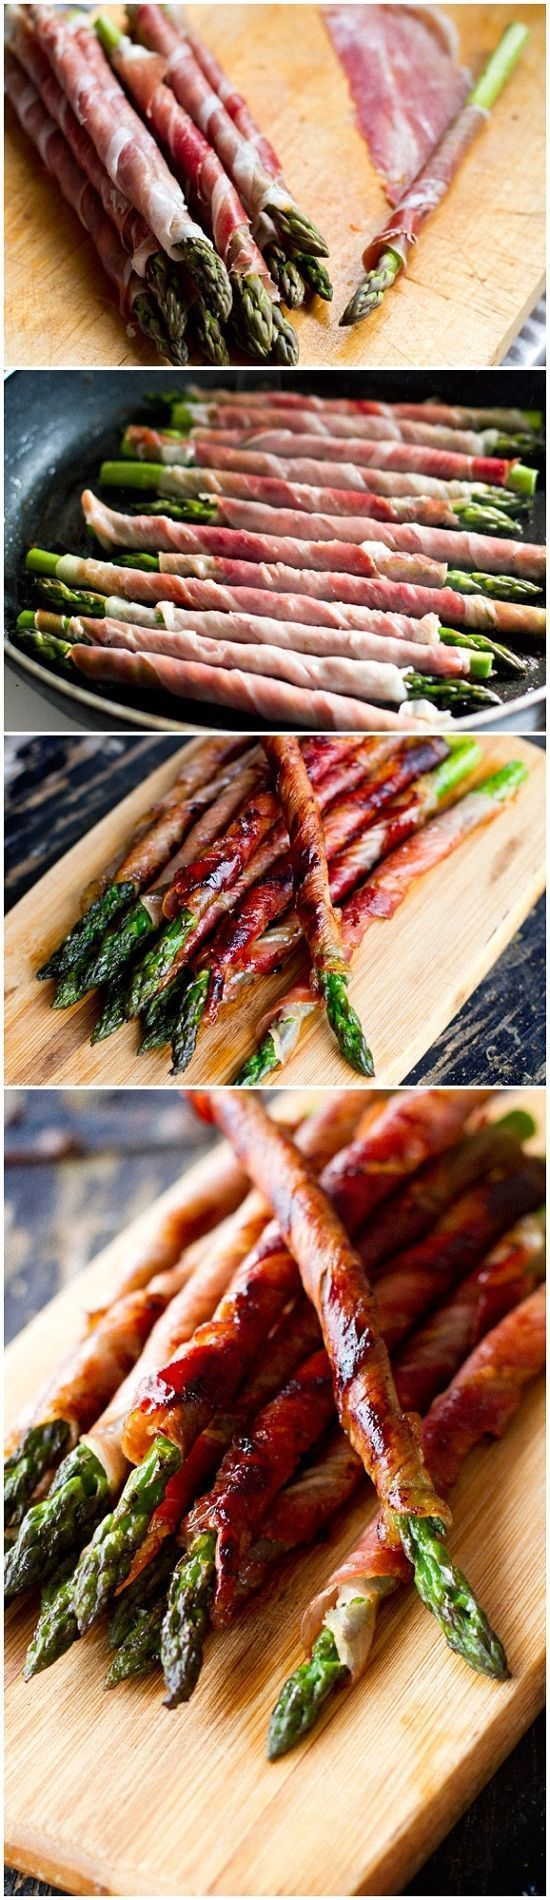 hummm à croquer :) Prosciutto Wrapped AsparagusIngredients:12 aspa... - Inspiring picture on Joyzz.com